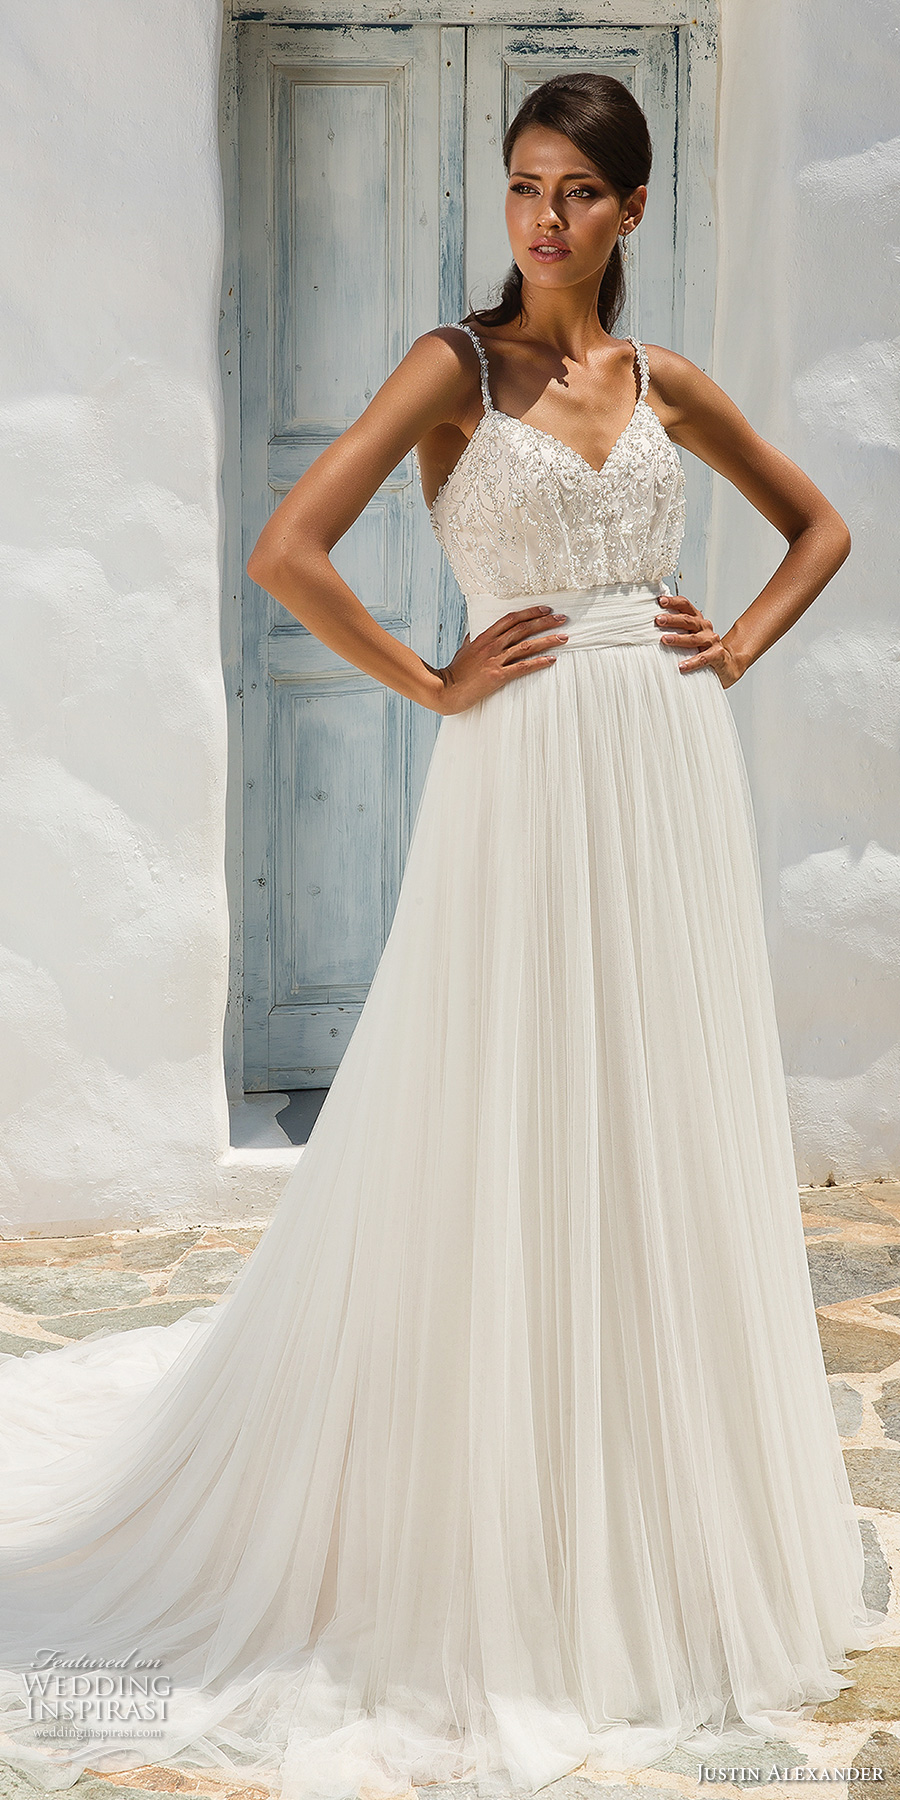 justin alexander 2018 bridal thin strap sweetheart neckline heavily embellished bodice romantic soft a  line wedding dress open v back medium train (8) mv